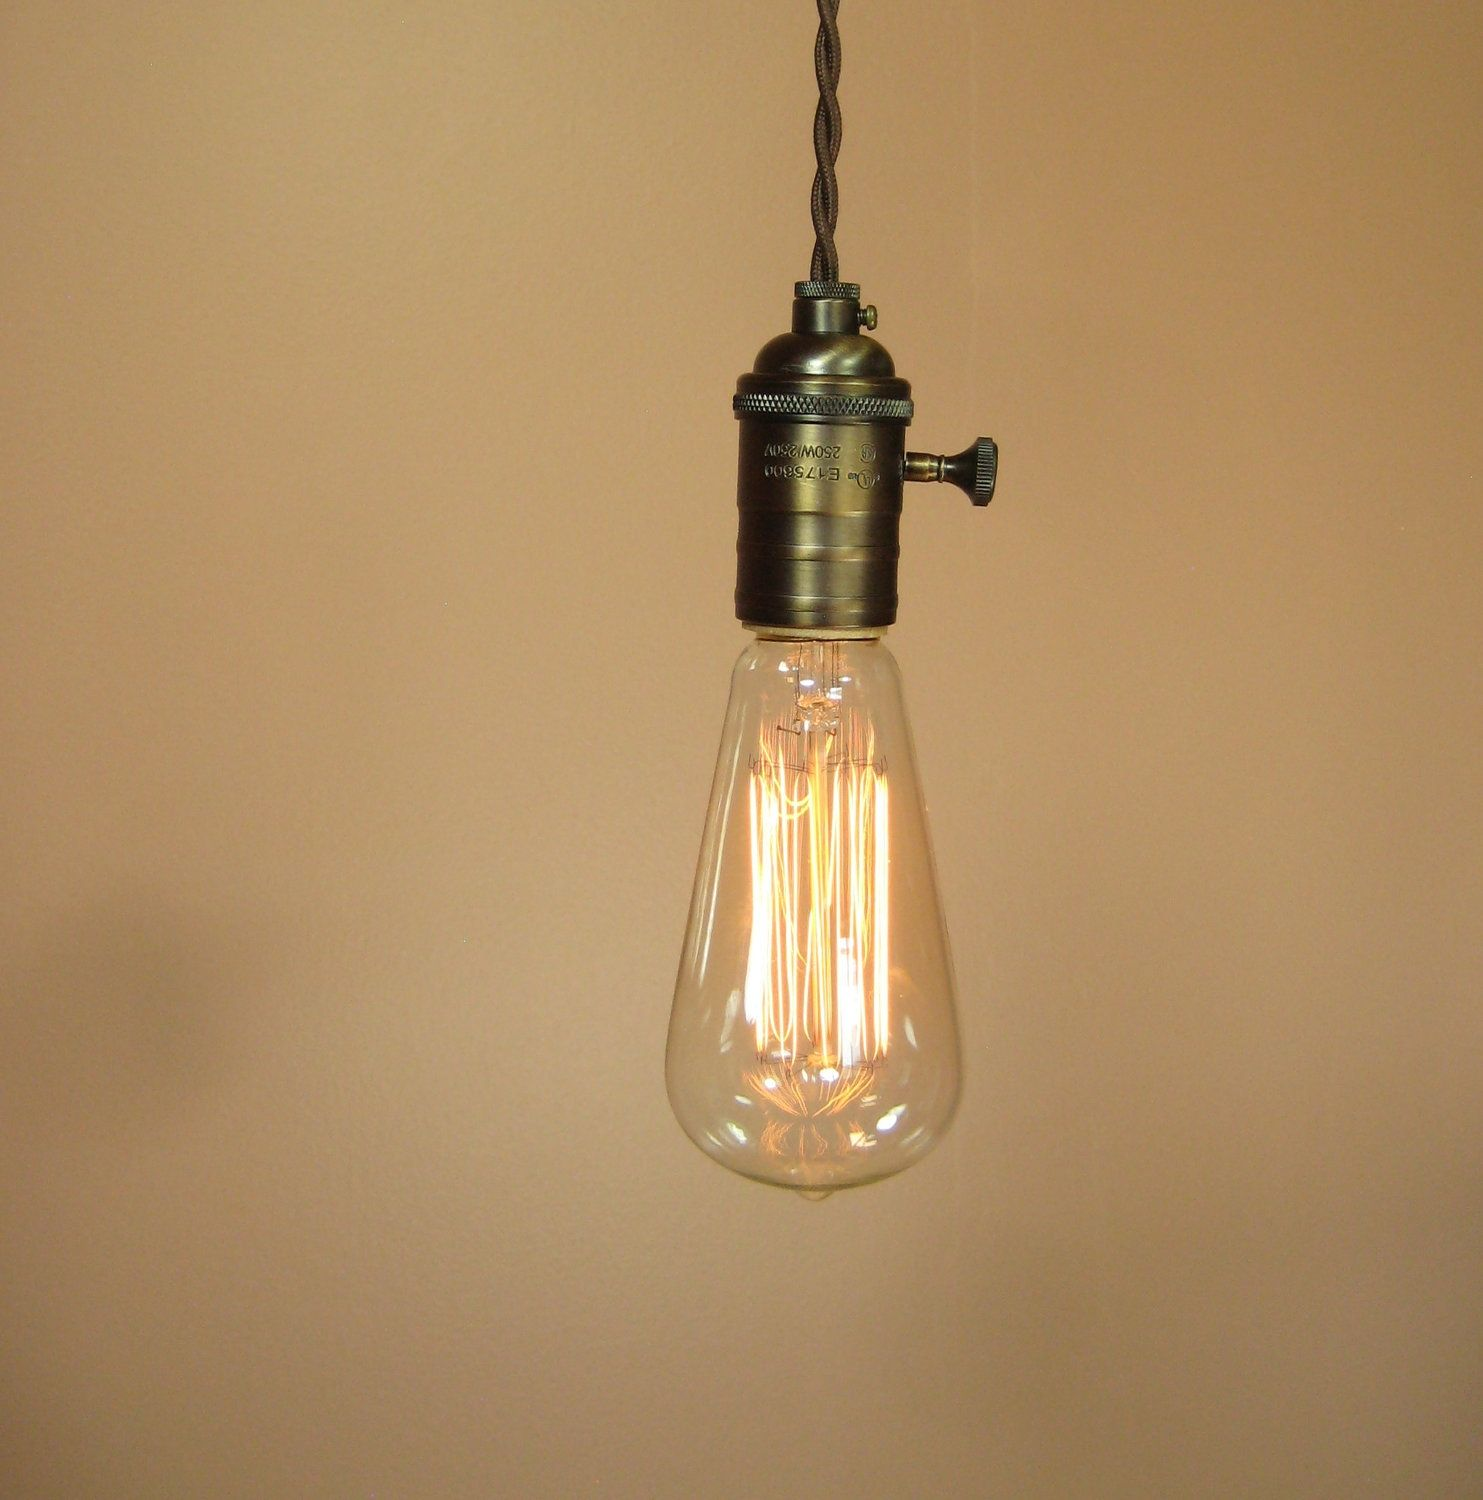 bare bulb lighting. Bare Bulb Hanging Light Fixture Lighting P